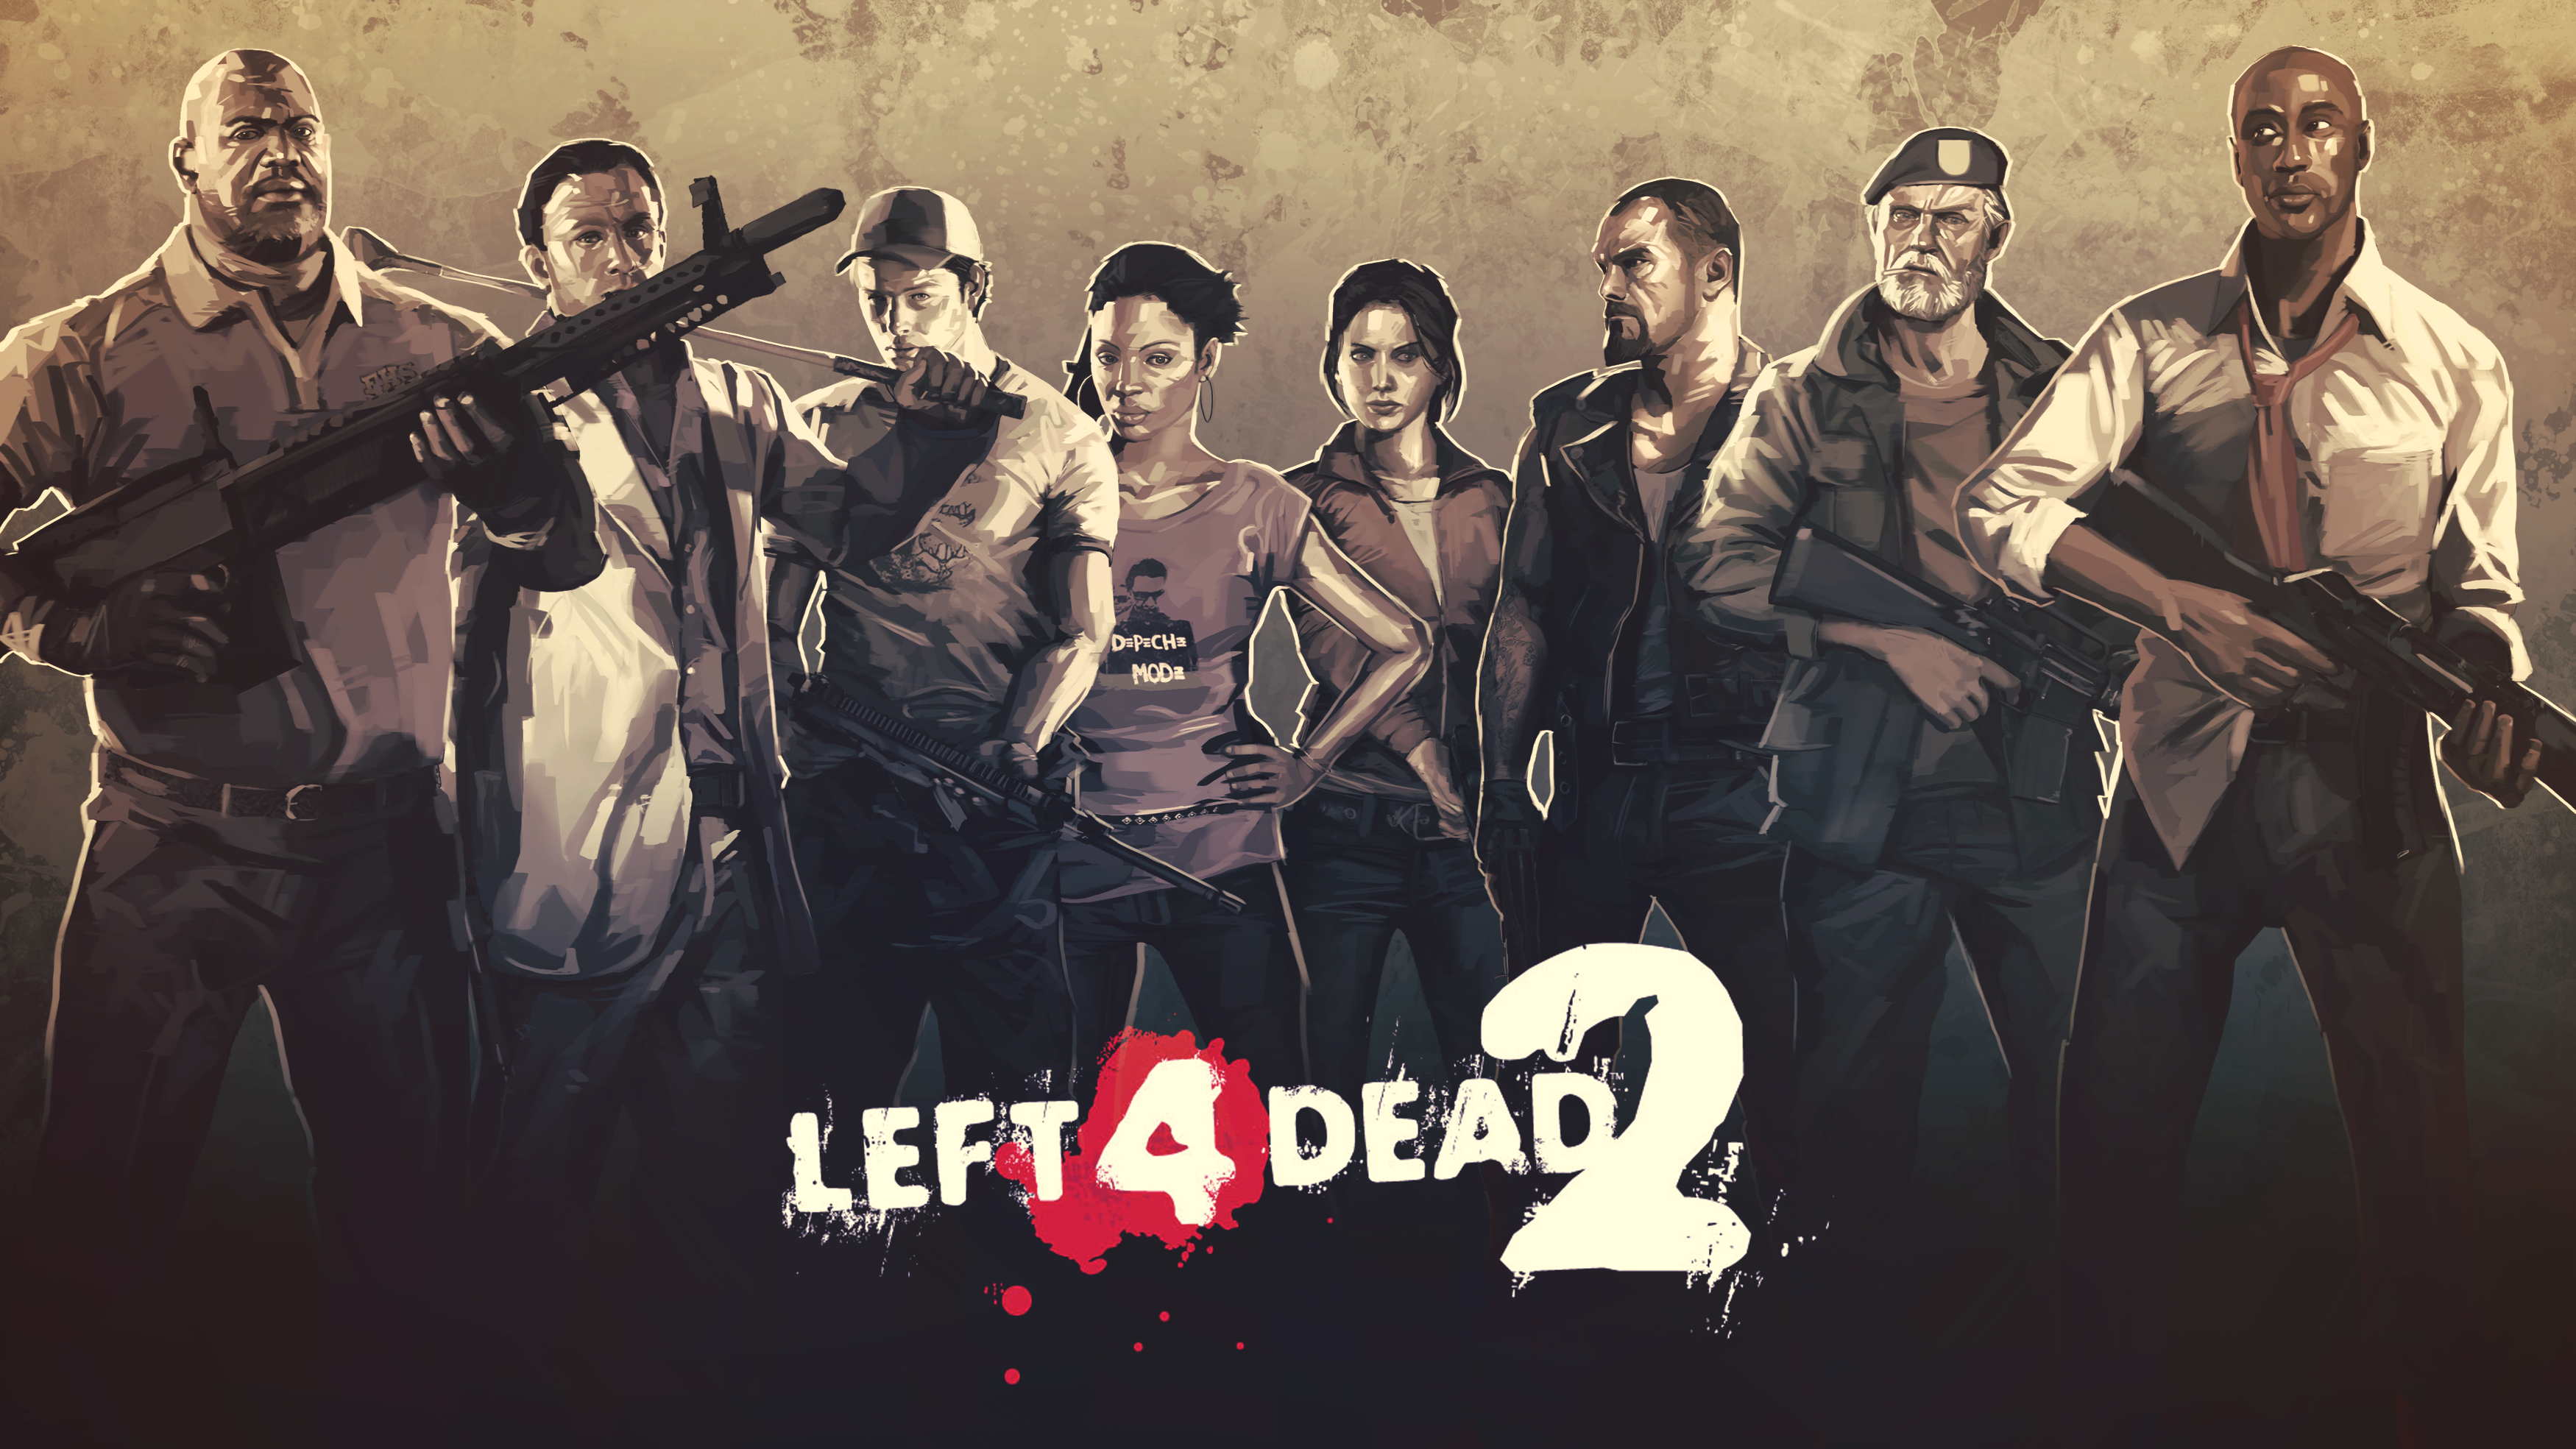 Left 4 Dead 2 Wallpaper by Lorena Parham, BsnSCB Graphics | Games HD Quality